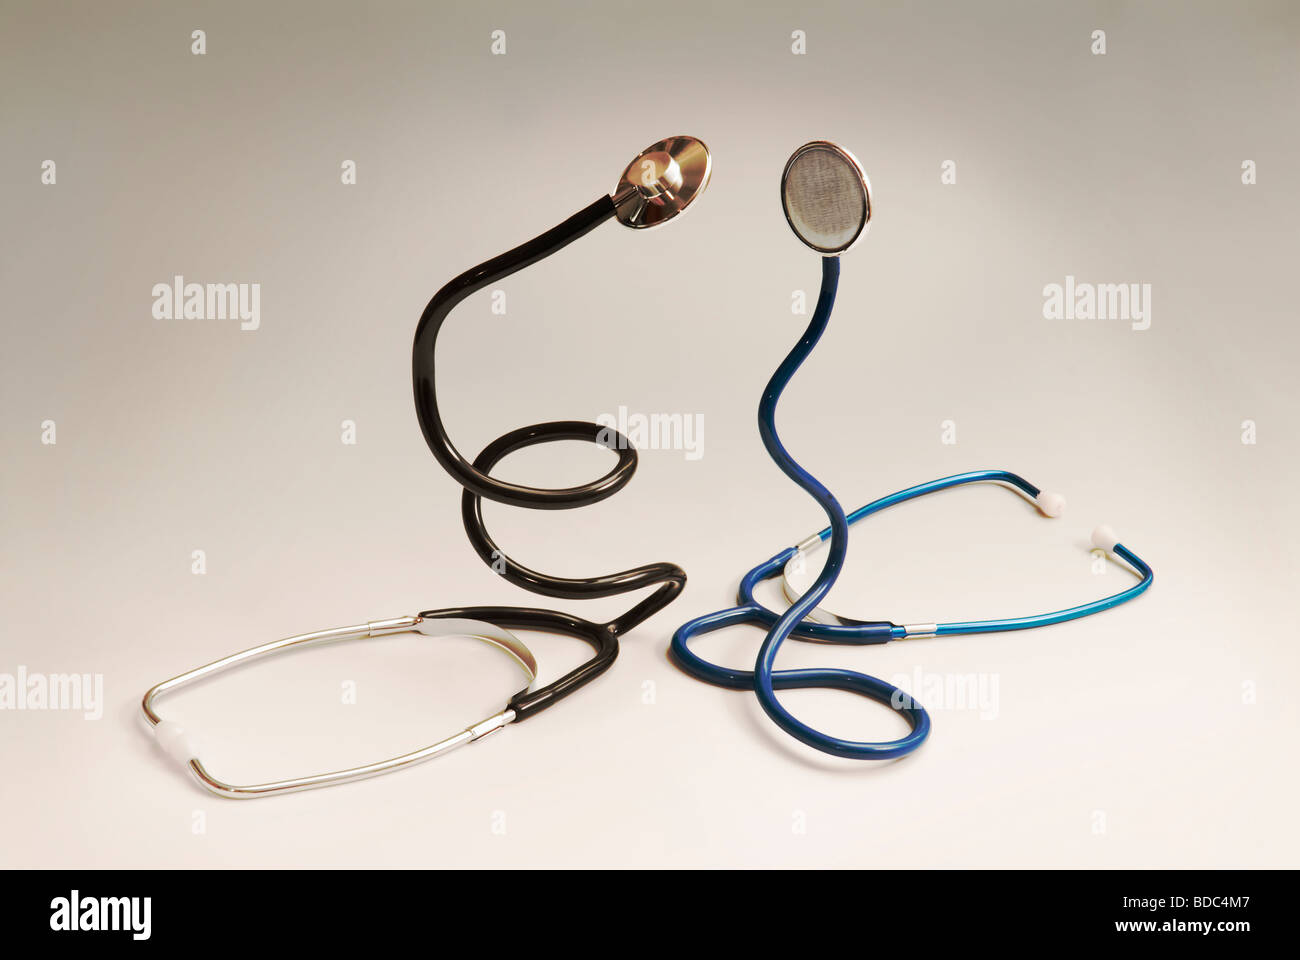 two stethoscopes coiled like snakes - Stock Image